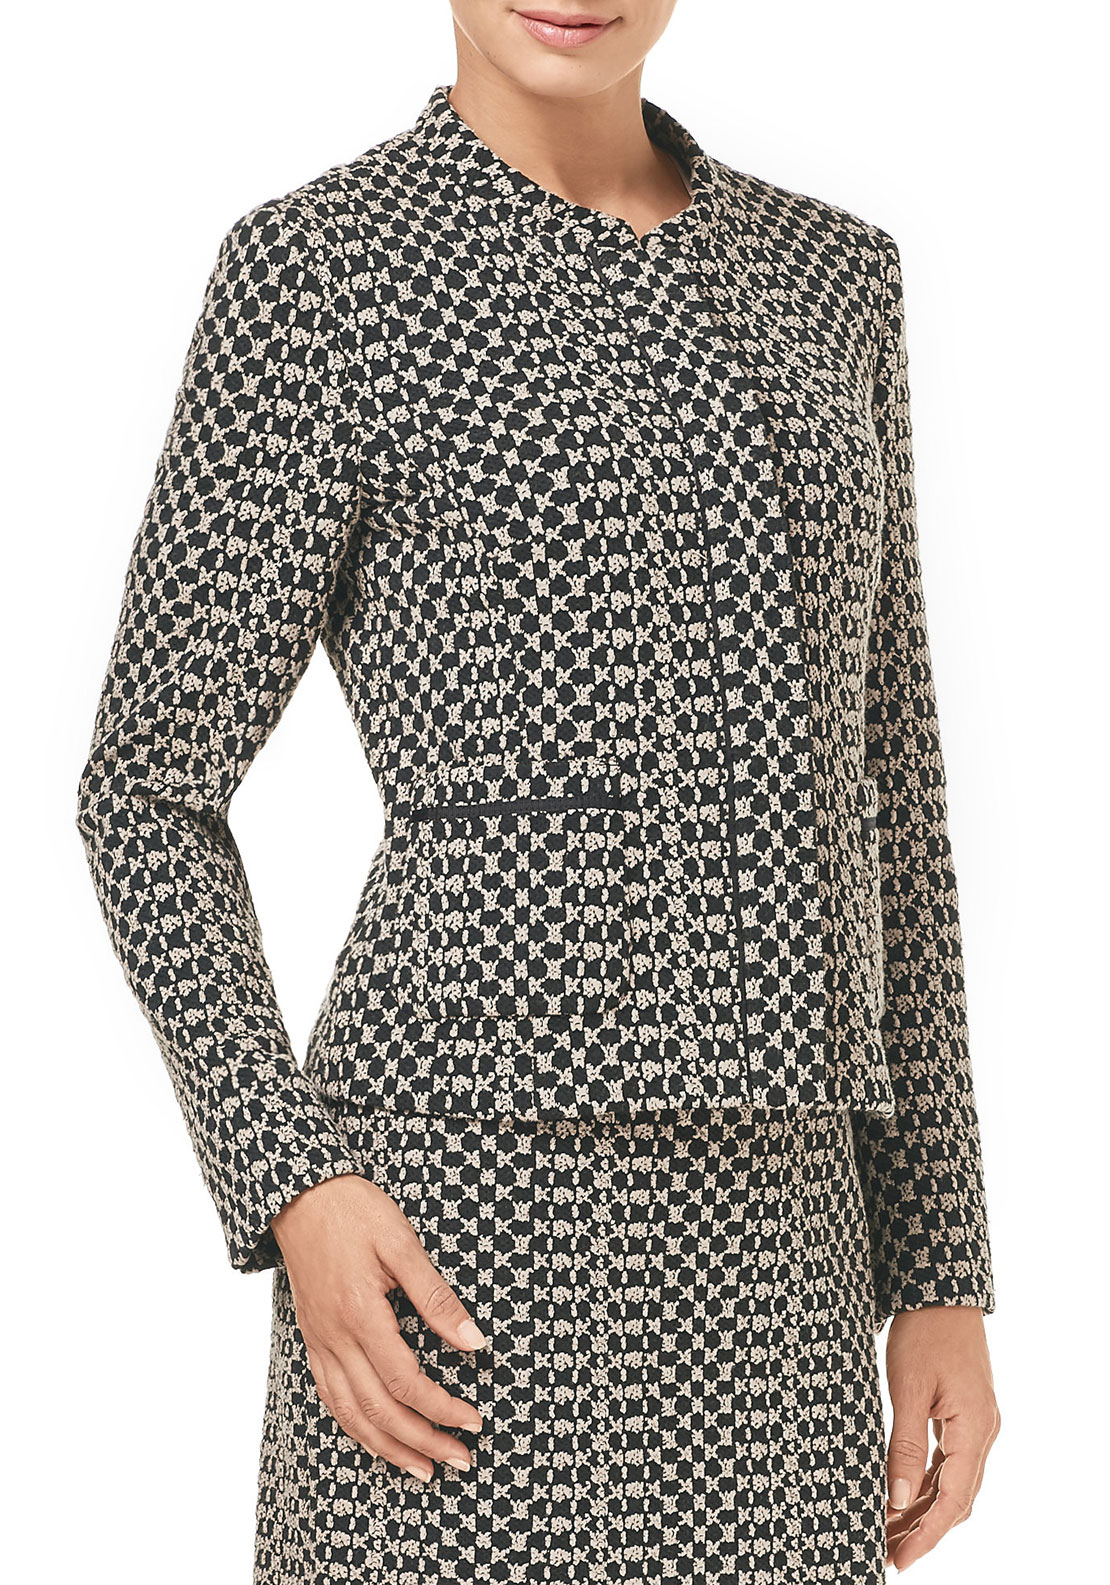 Gerry Weber Woven Jersey Jacket, Black & Tan